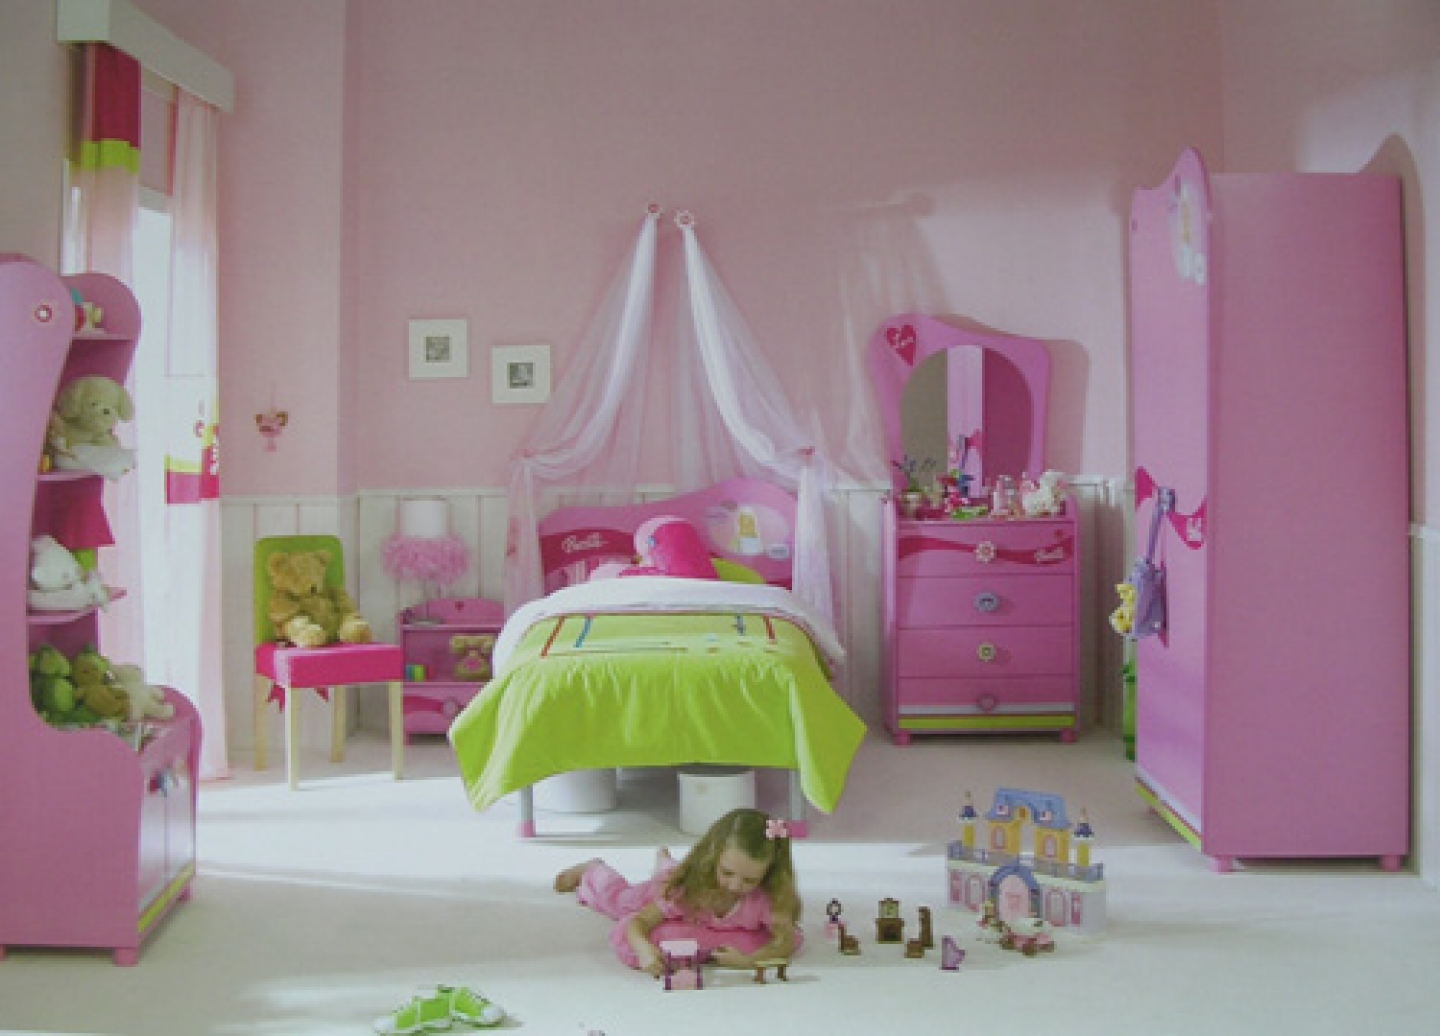 little girl room ideas pictures photo - 3